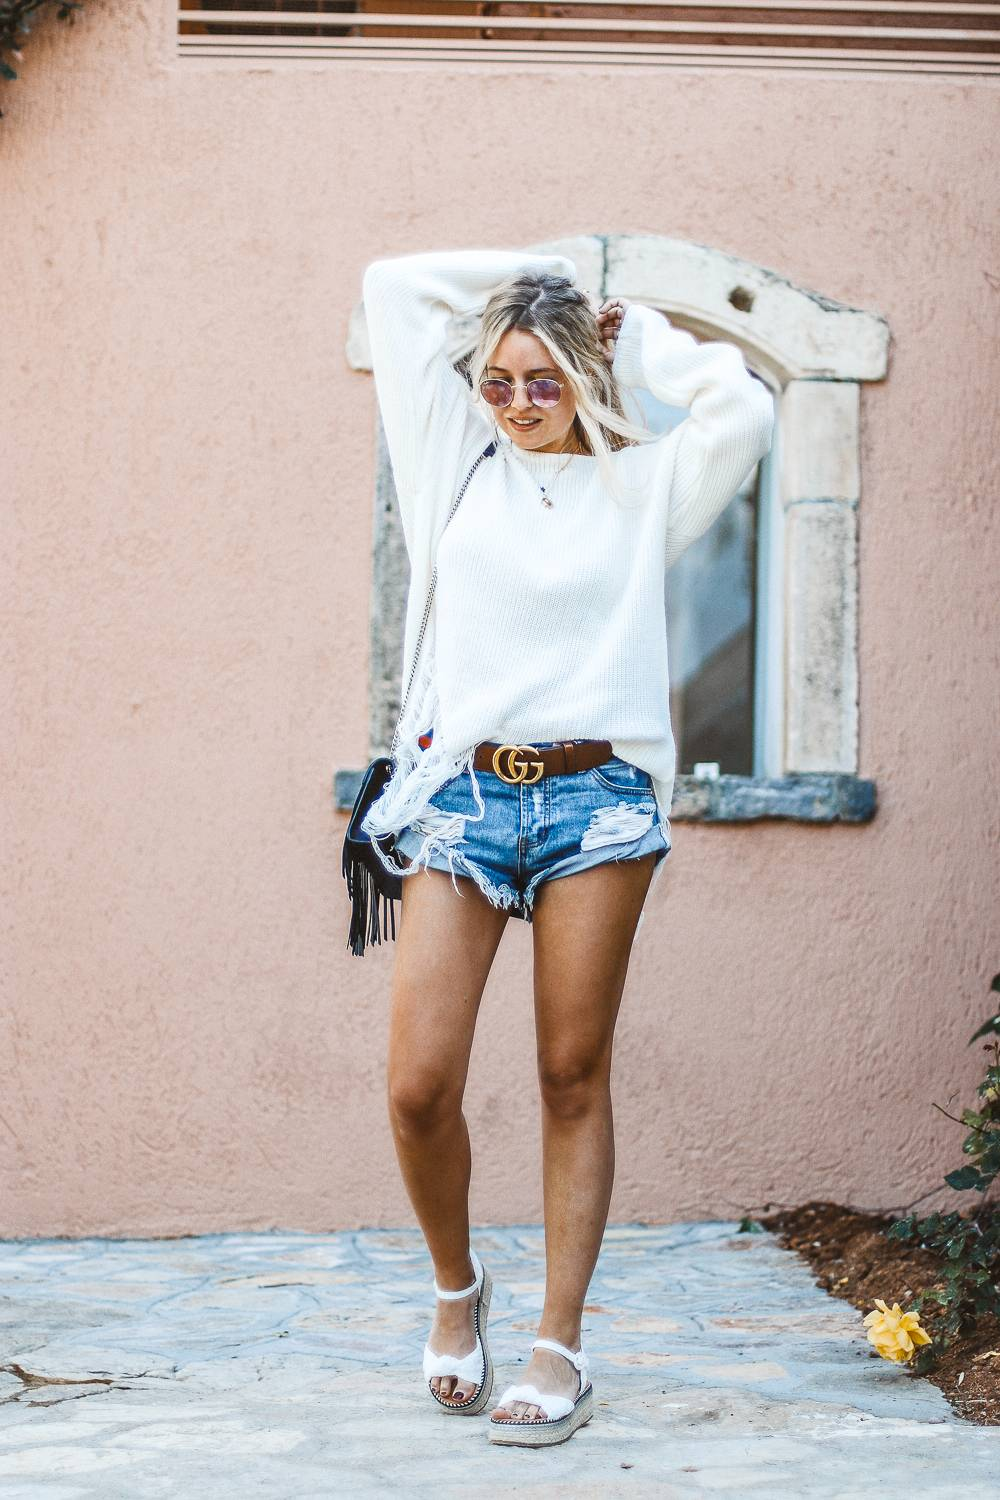 Shorts and white knit in Greece